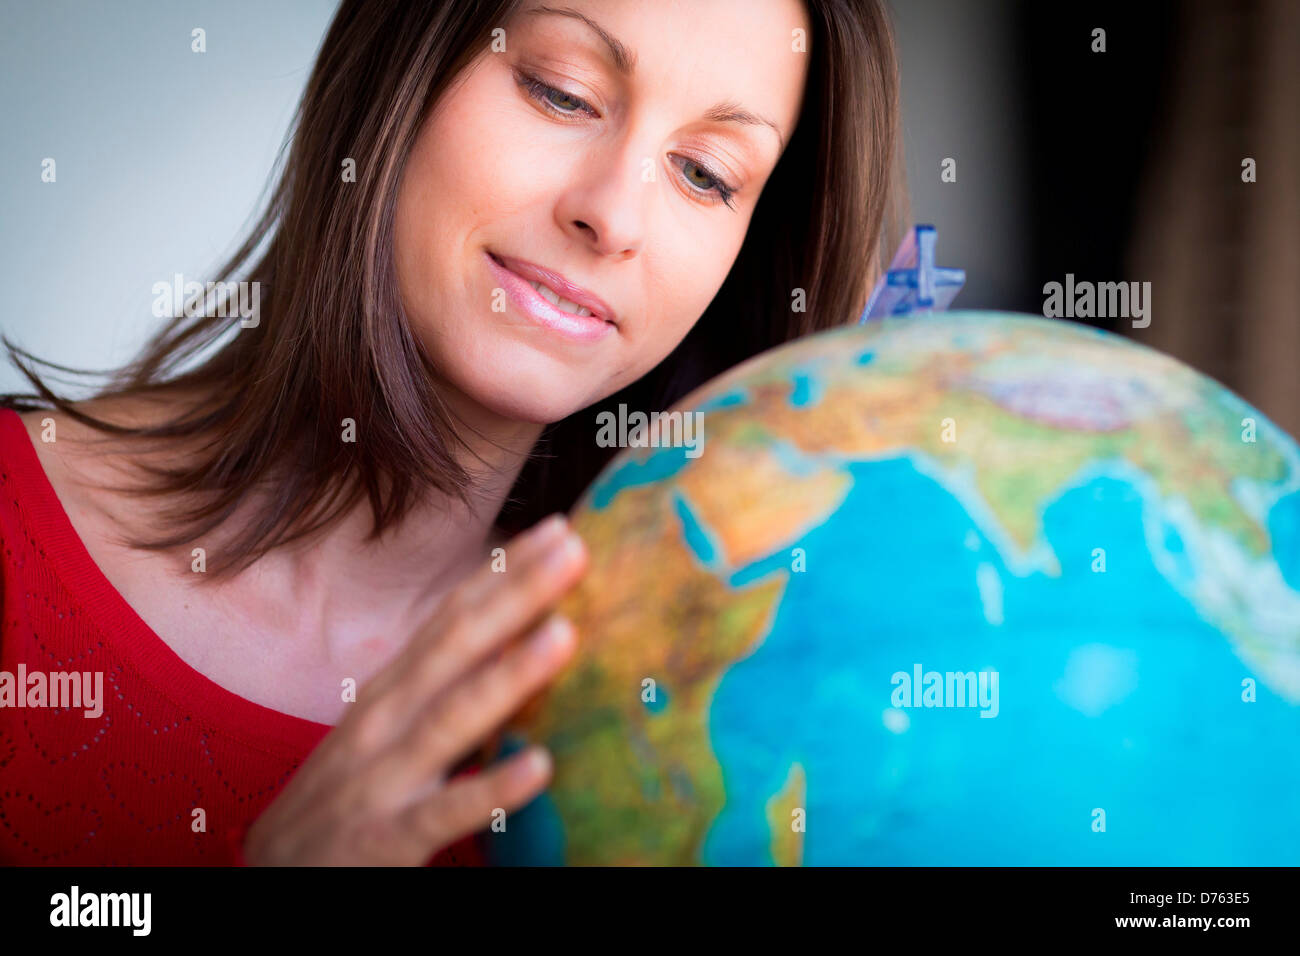 Woman looking at a map of the world Stock Photo